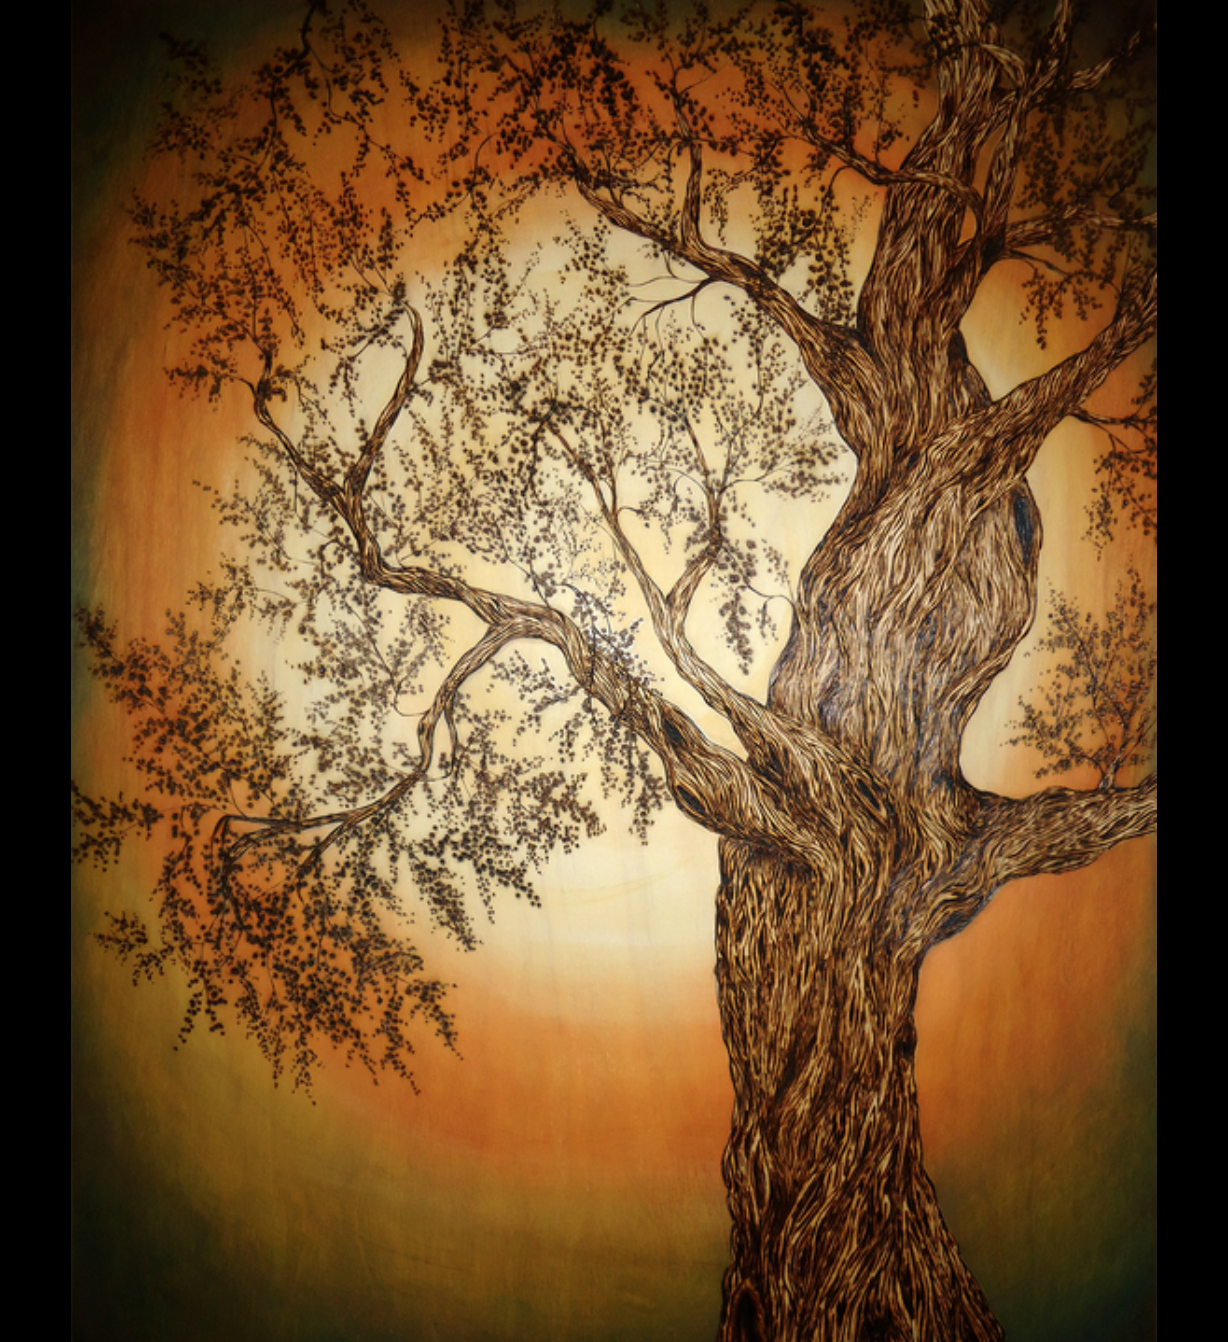 Vicki Hamende - http://www.wonderwalldesigns.comA combination of wood burning(pyrography) & oil painting on handmade birch canvas.Designs are burned into the wood.I gouge the wood creating depth & texture. Each piece is then enhanced with oil paint